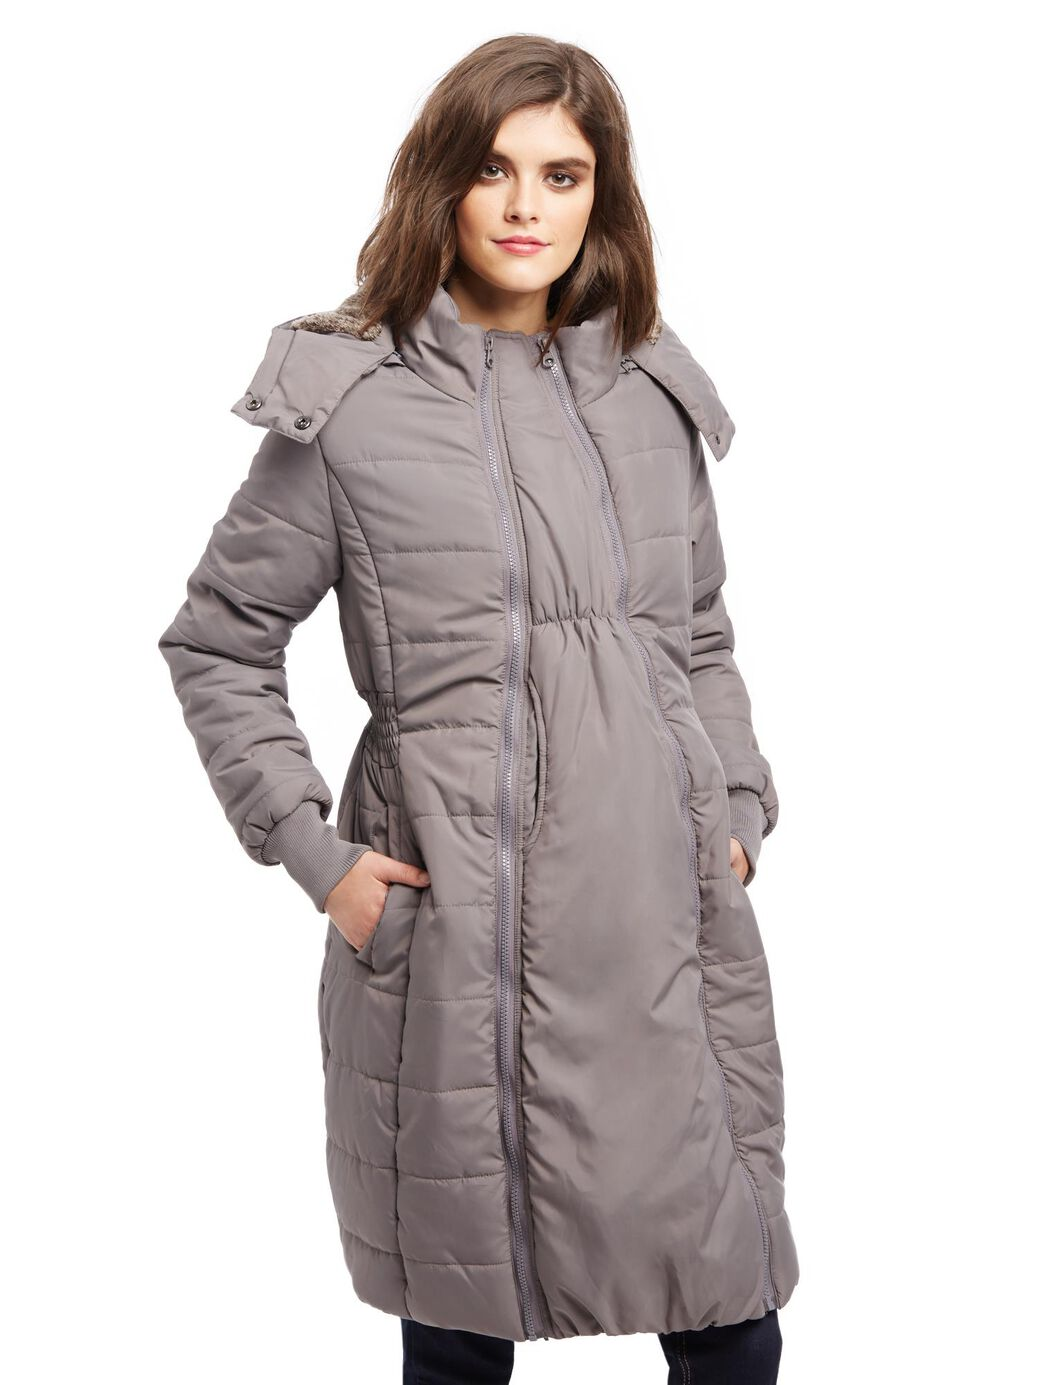 Modern Eternity 3 In 1 Knee Length Maternity Puffer Coat at Motherhood Maternity in Victor, NY | Tuggl